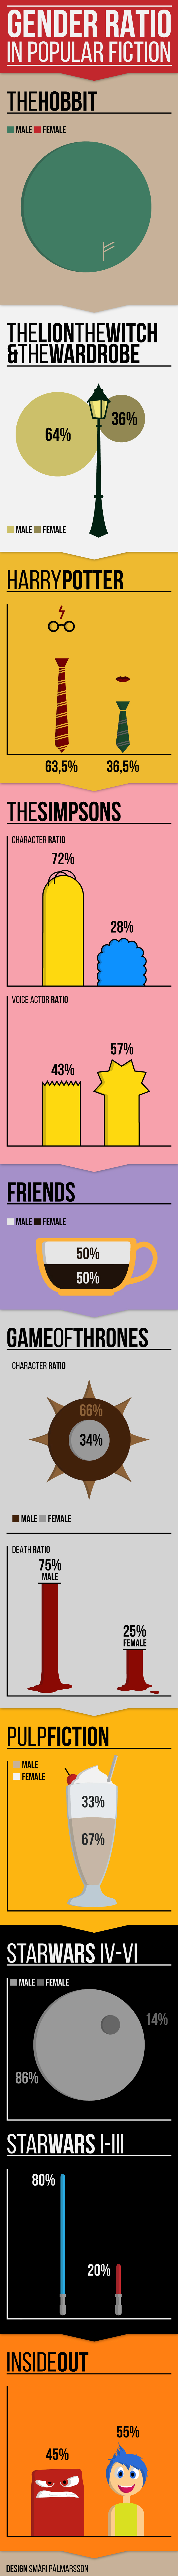 Gender-ratio-in-popular-fiction-infographic